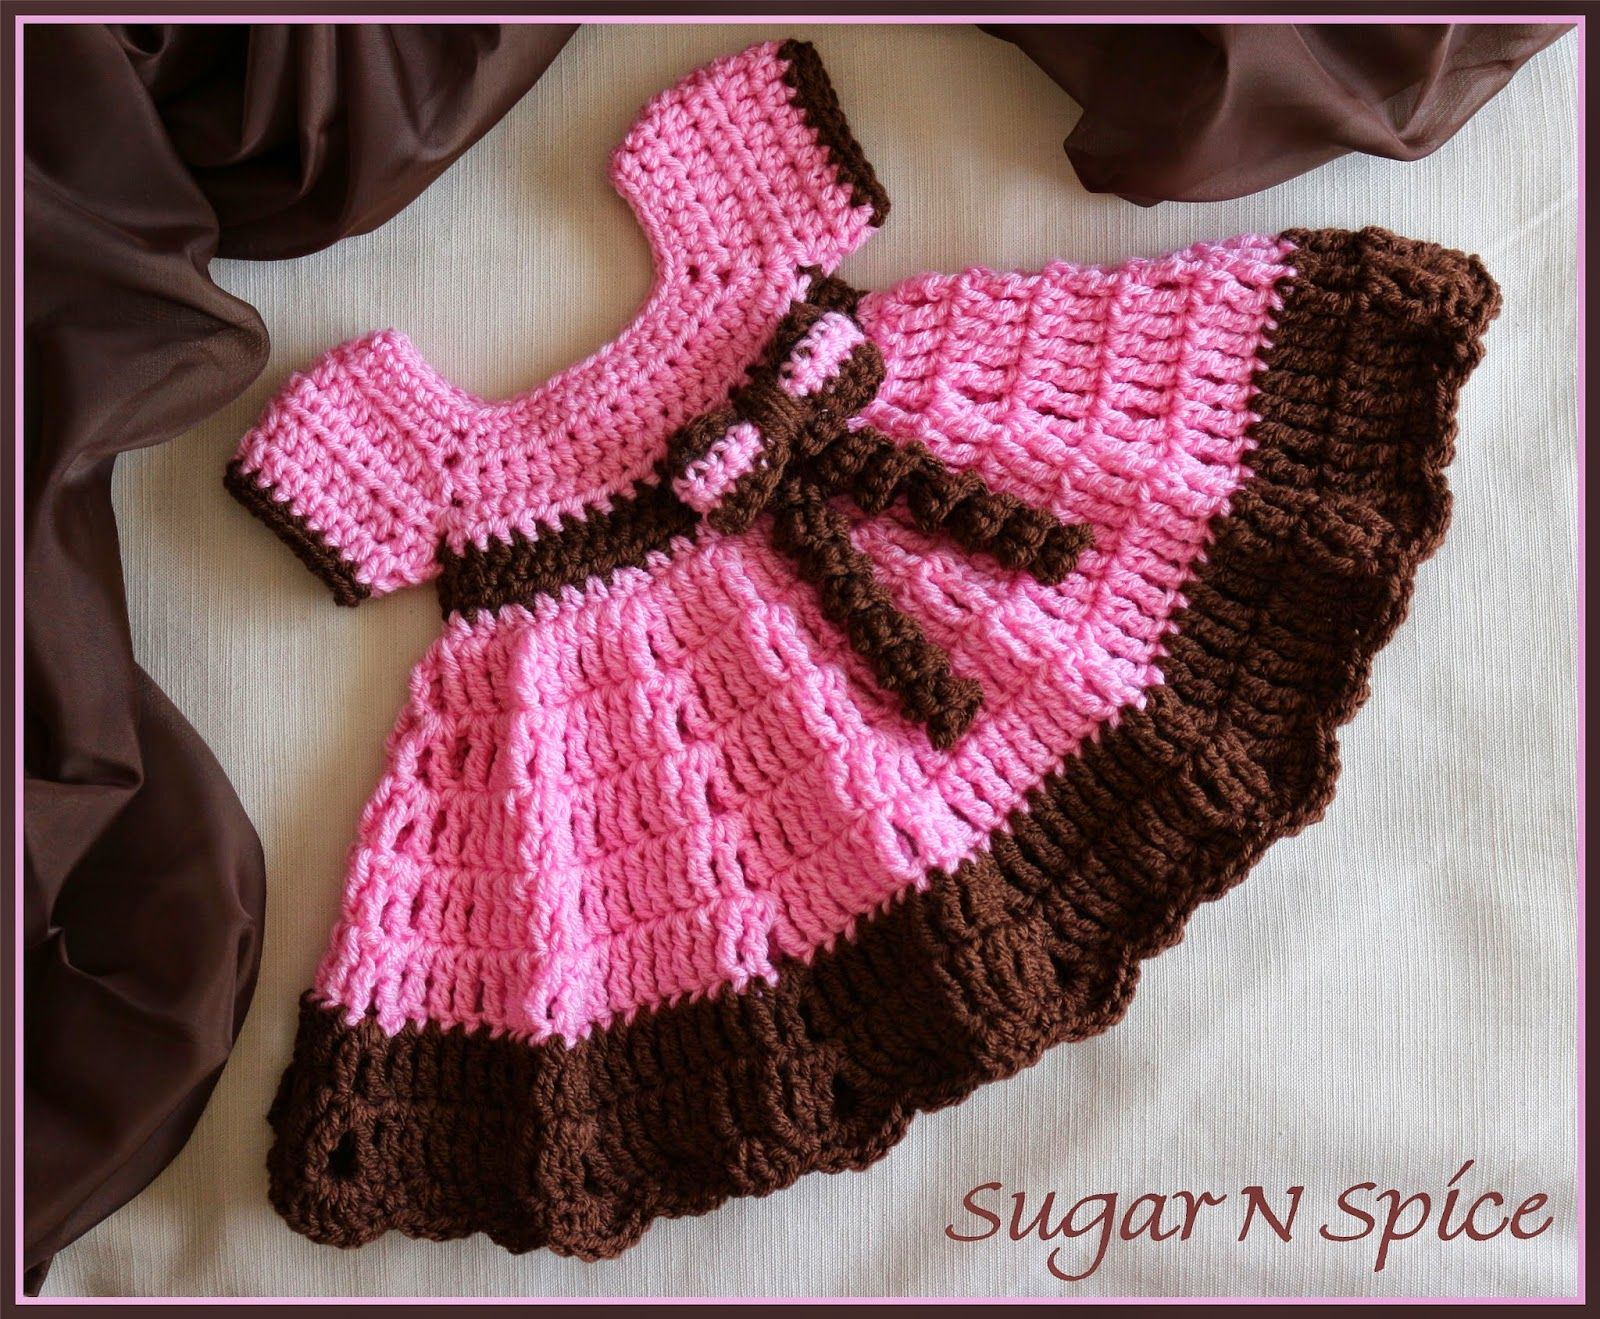 This Housewife Life: Sugar N Spice Dress ~FREE PATTERN~ BEAUTIFUL ...